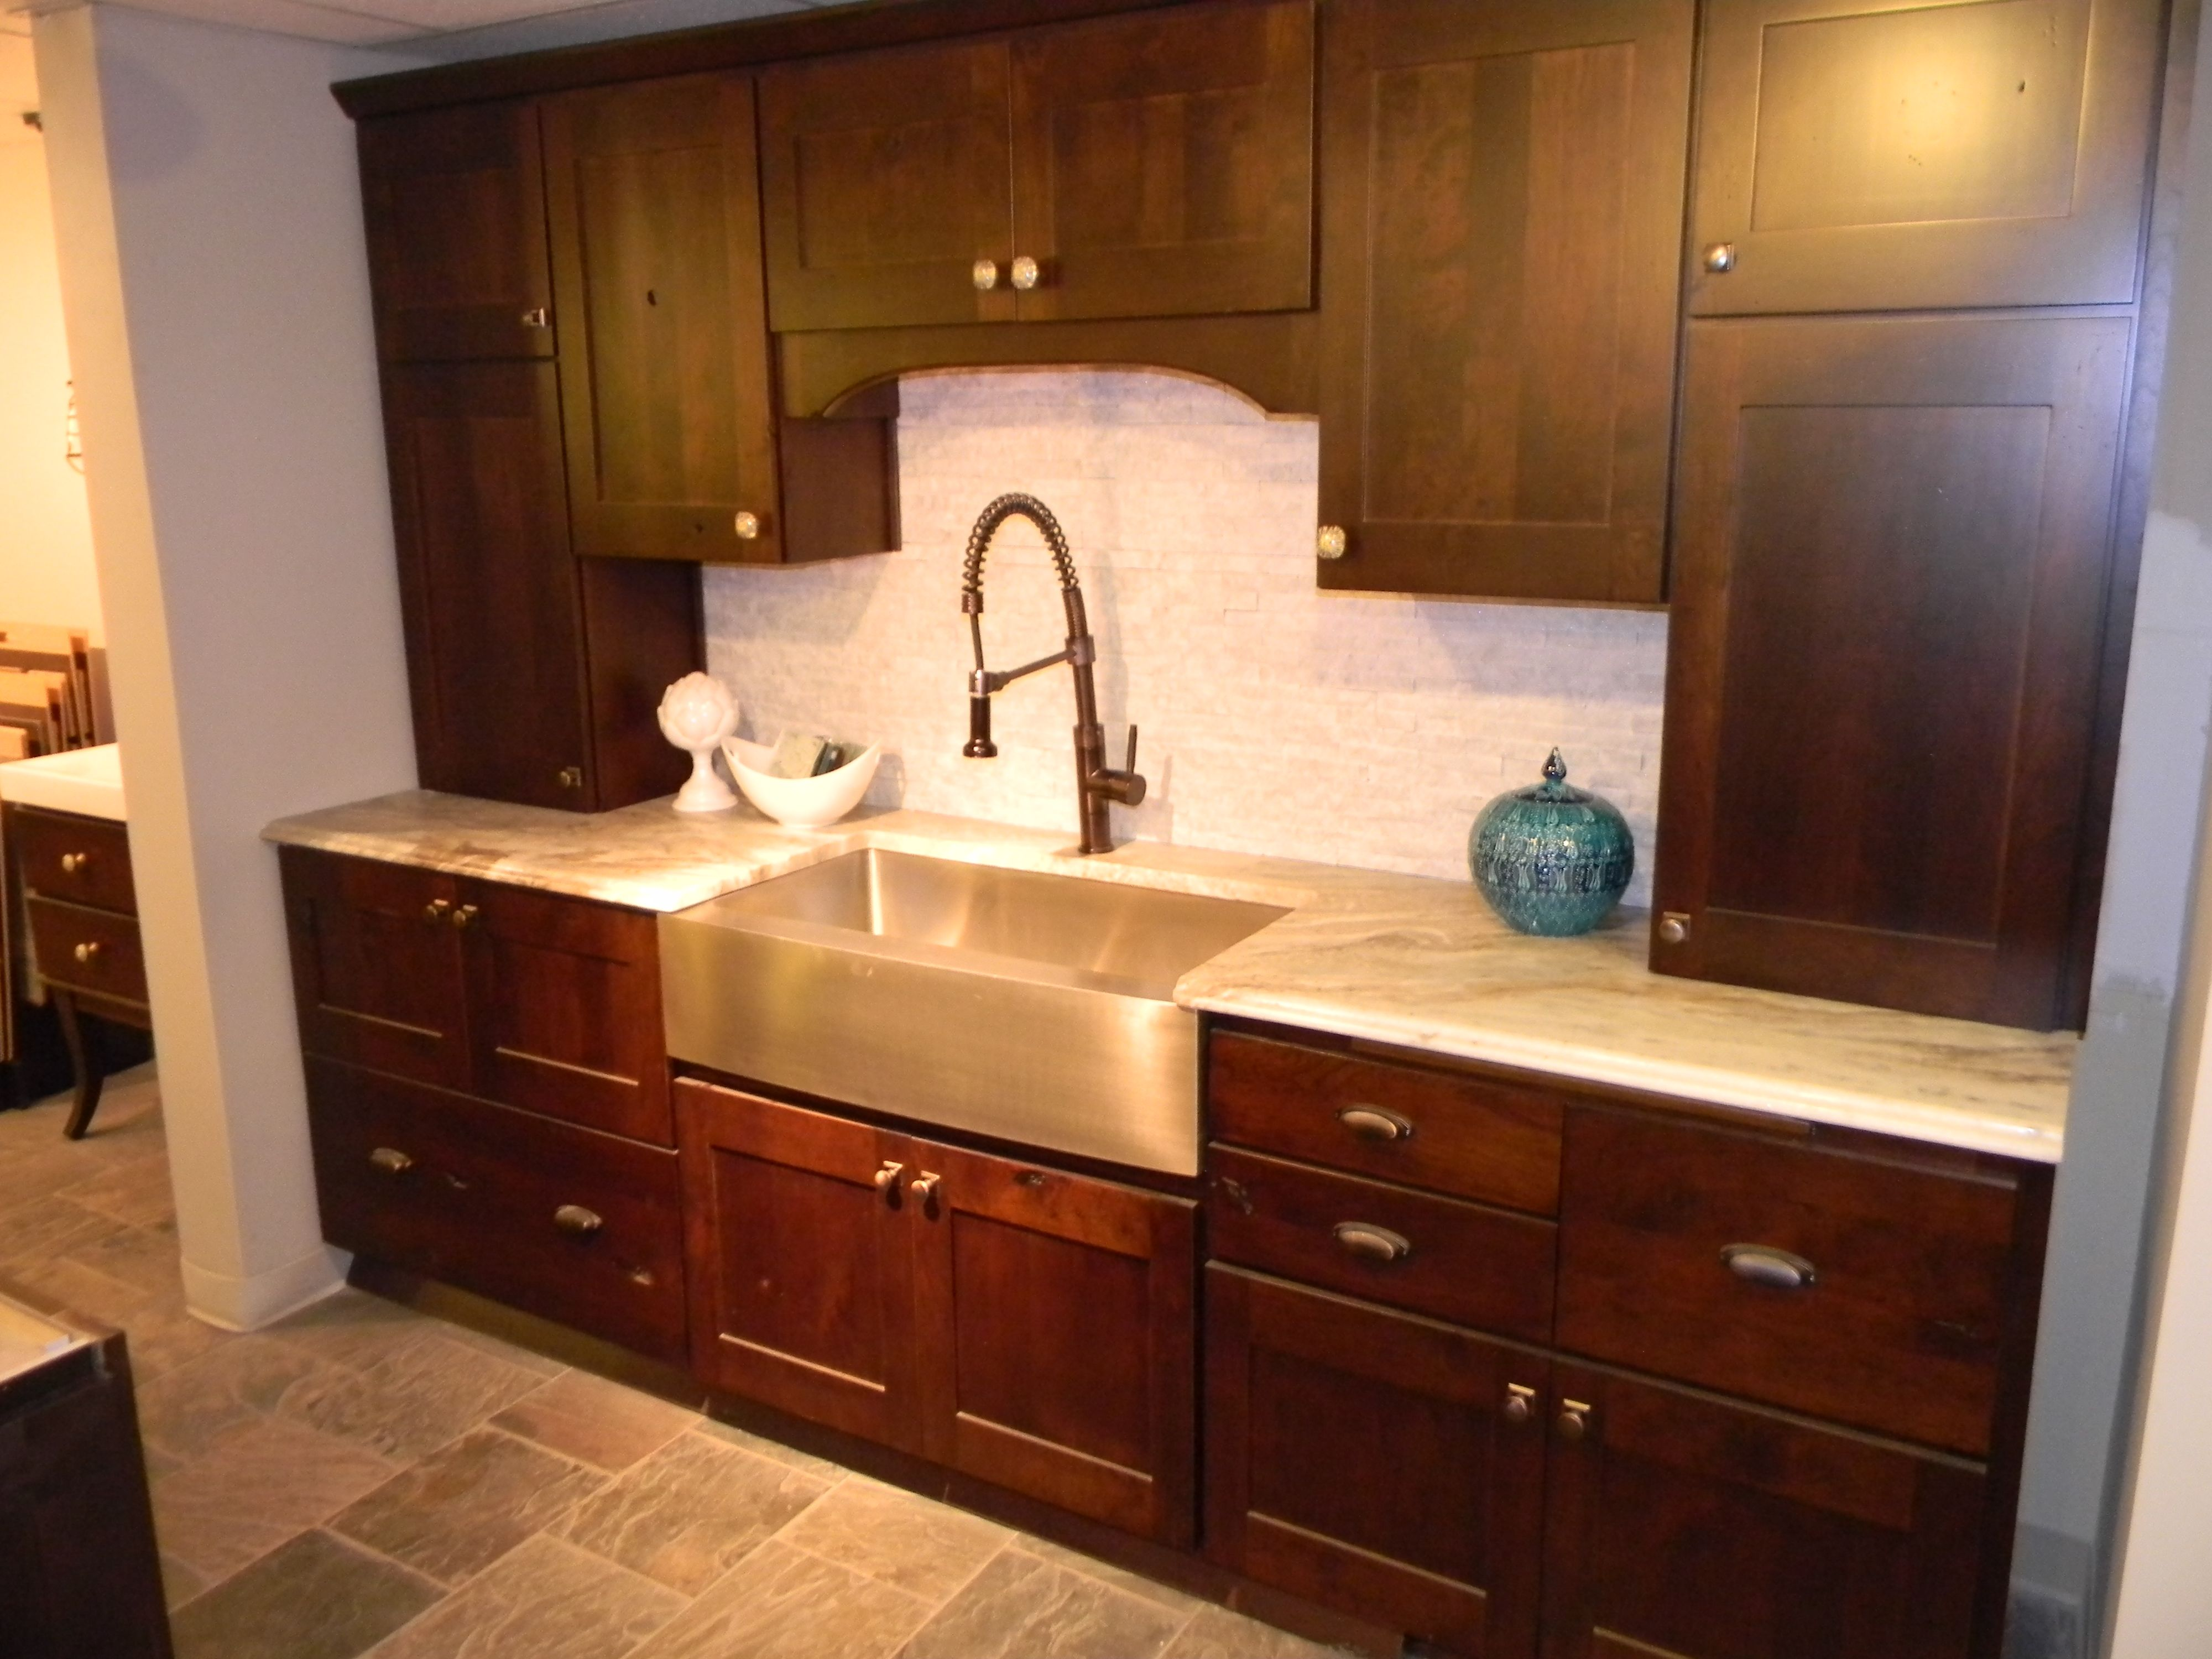 A Beautiful Kitchen Piece From Our Showroom In Nashville Tennessee Granite Countertops Remodel Kitchen Design Countertops Granite Quartz Countertops